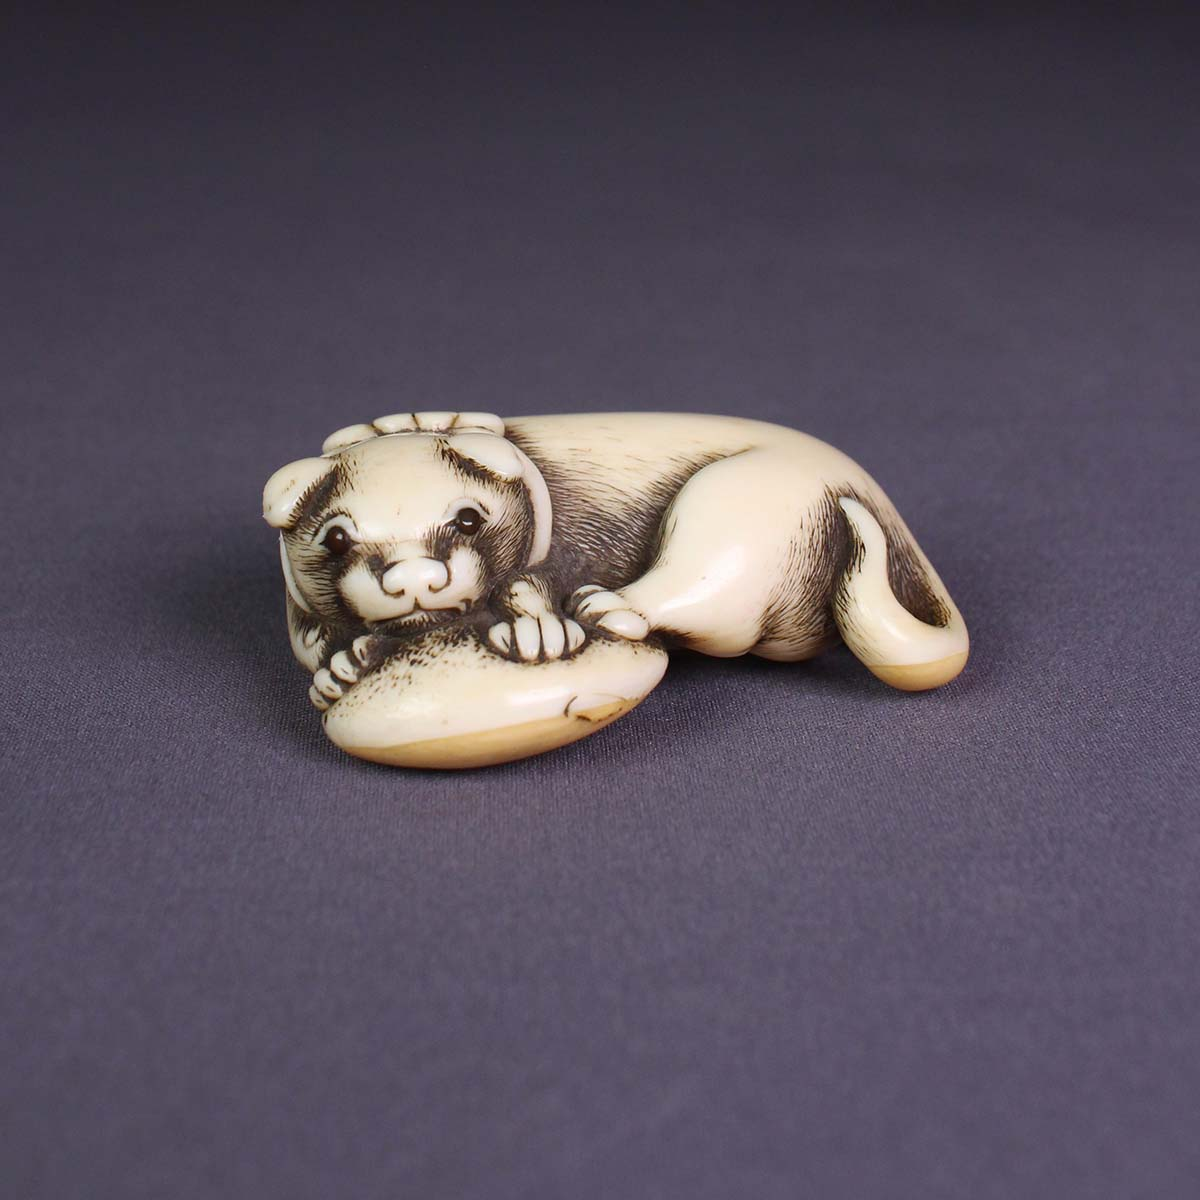 Ivory Netsuke of Dog with a Fugu Fish